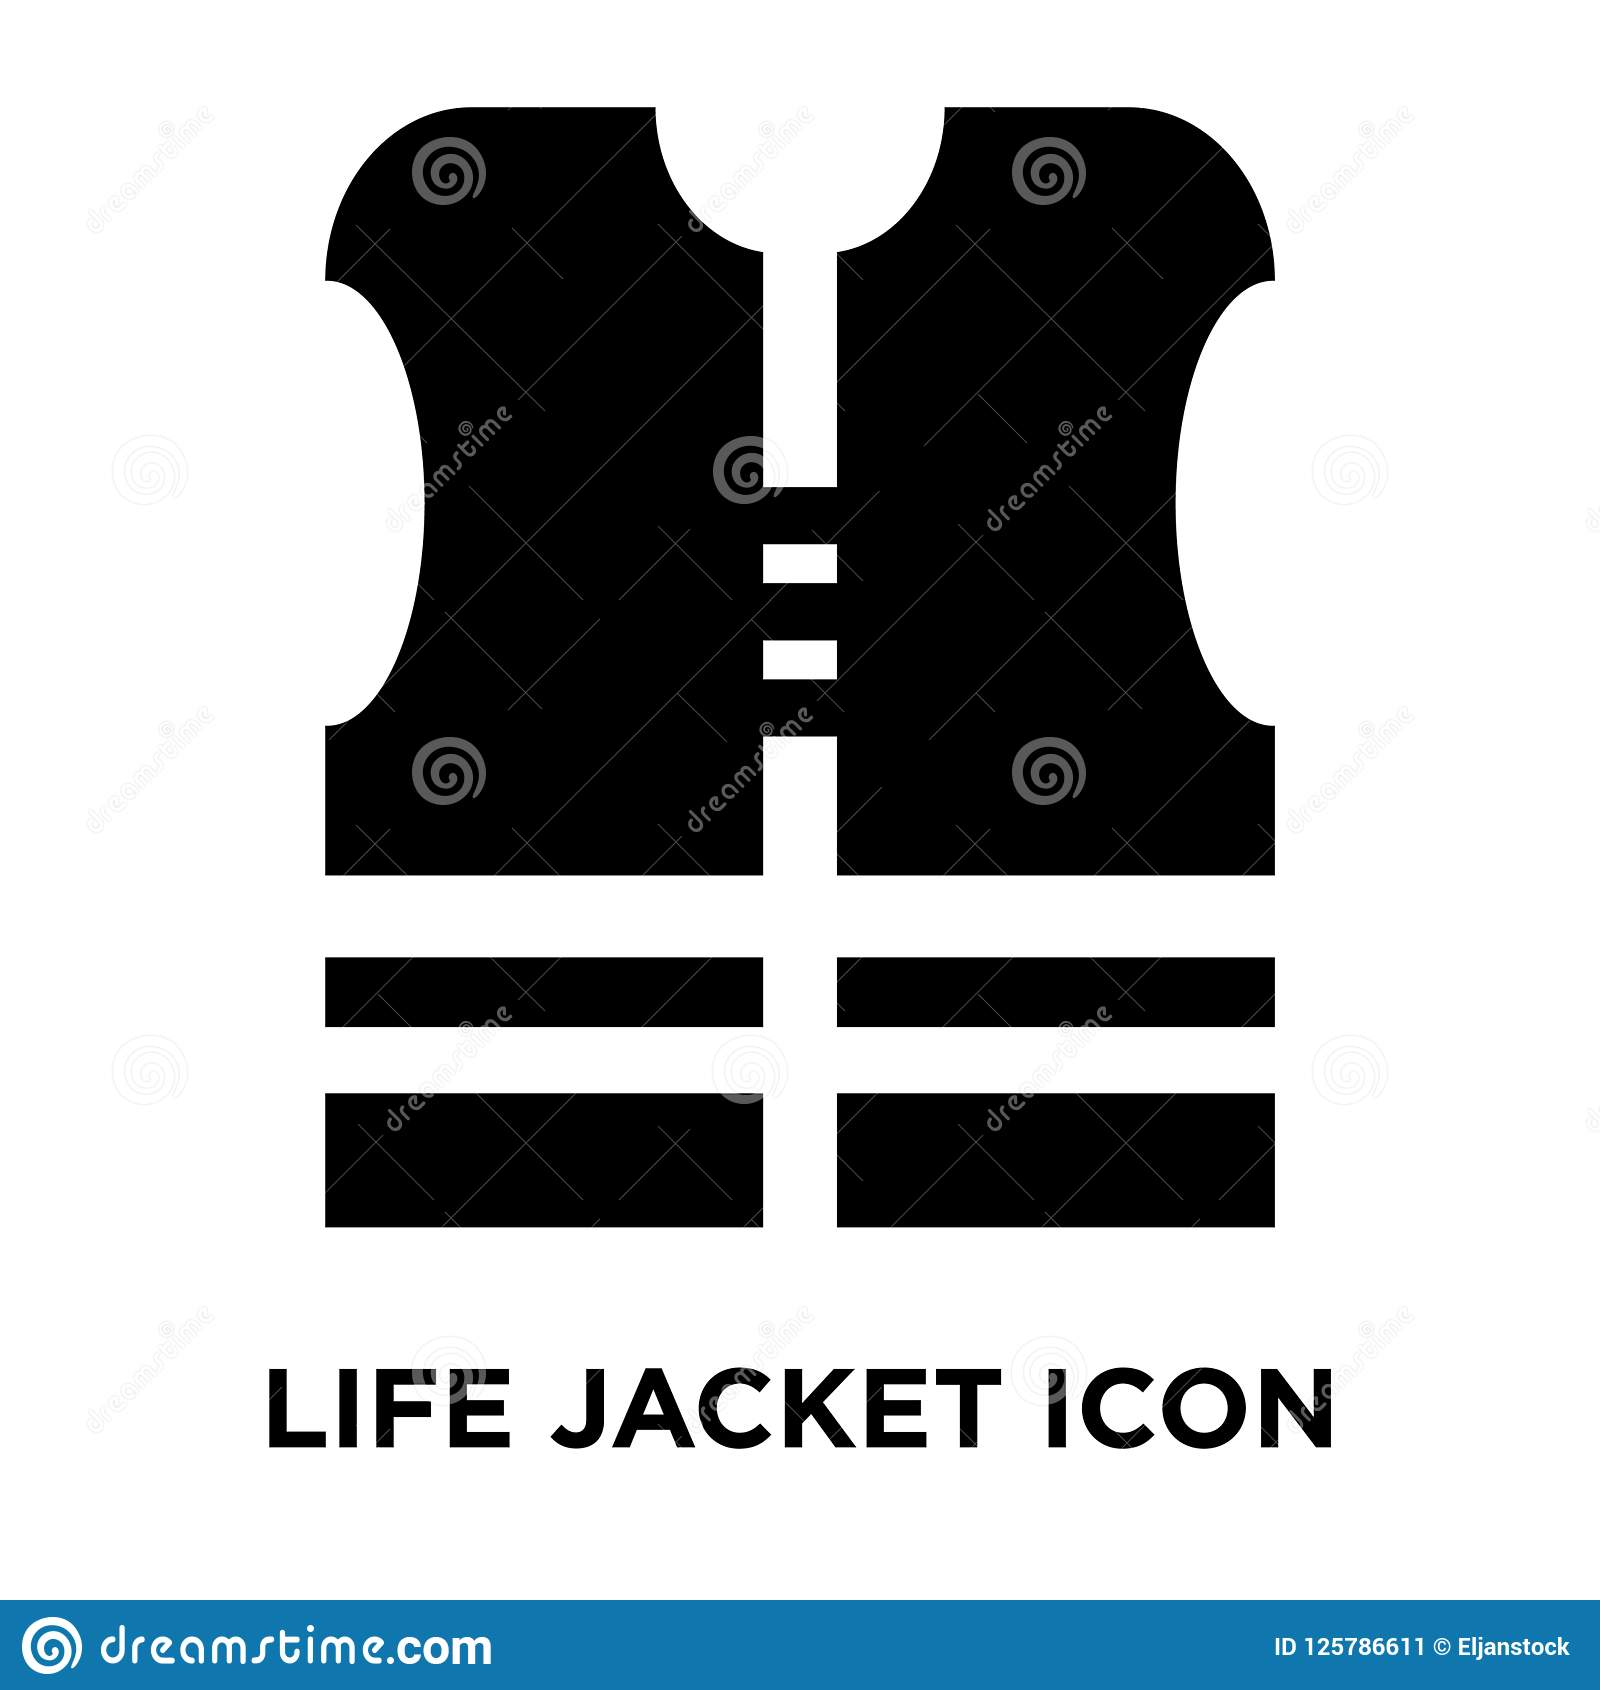 Life Jacket Icon Vector Isolated On White Background Logo Concept Of Life Jacket Sign On Transparent Background Black Filled Stock Vector Illustration Of Ship Clothes 125786611